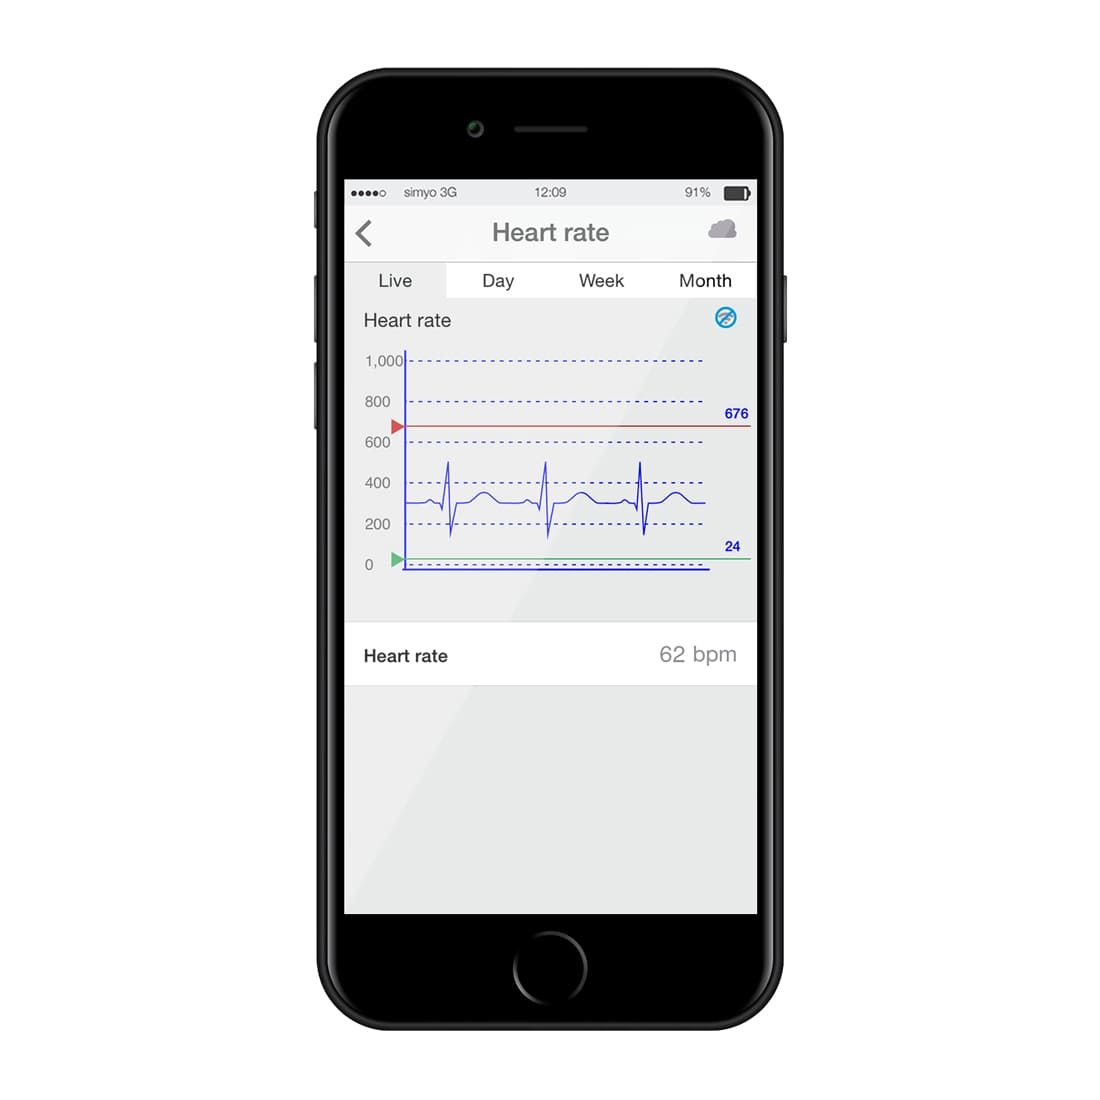 Heart rate visualized in MySignals mobile application